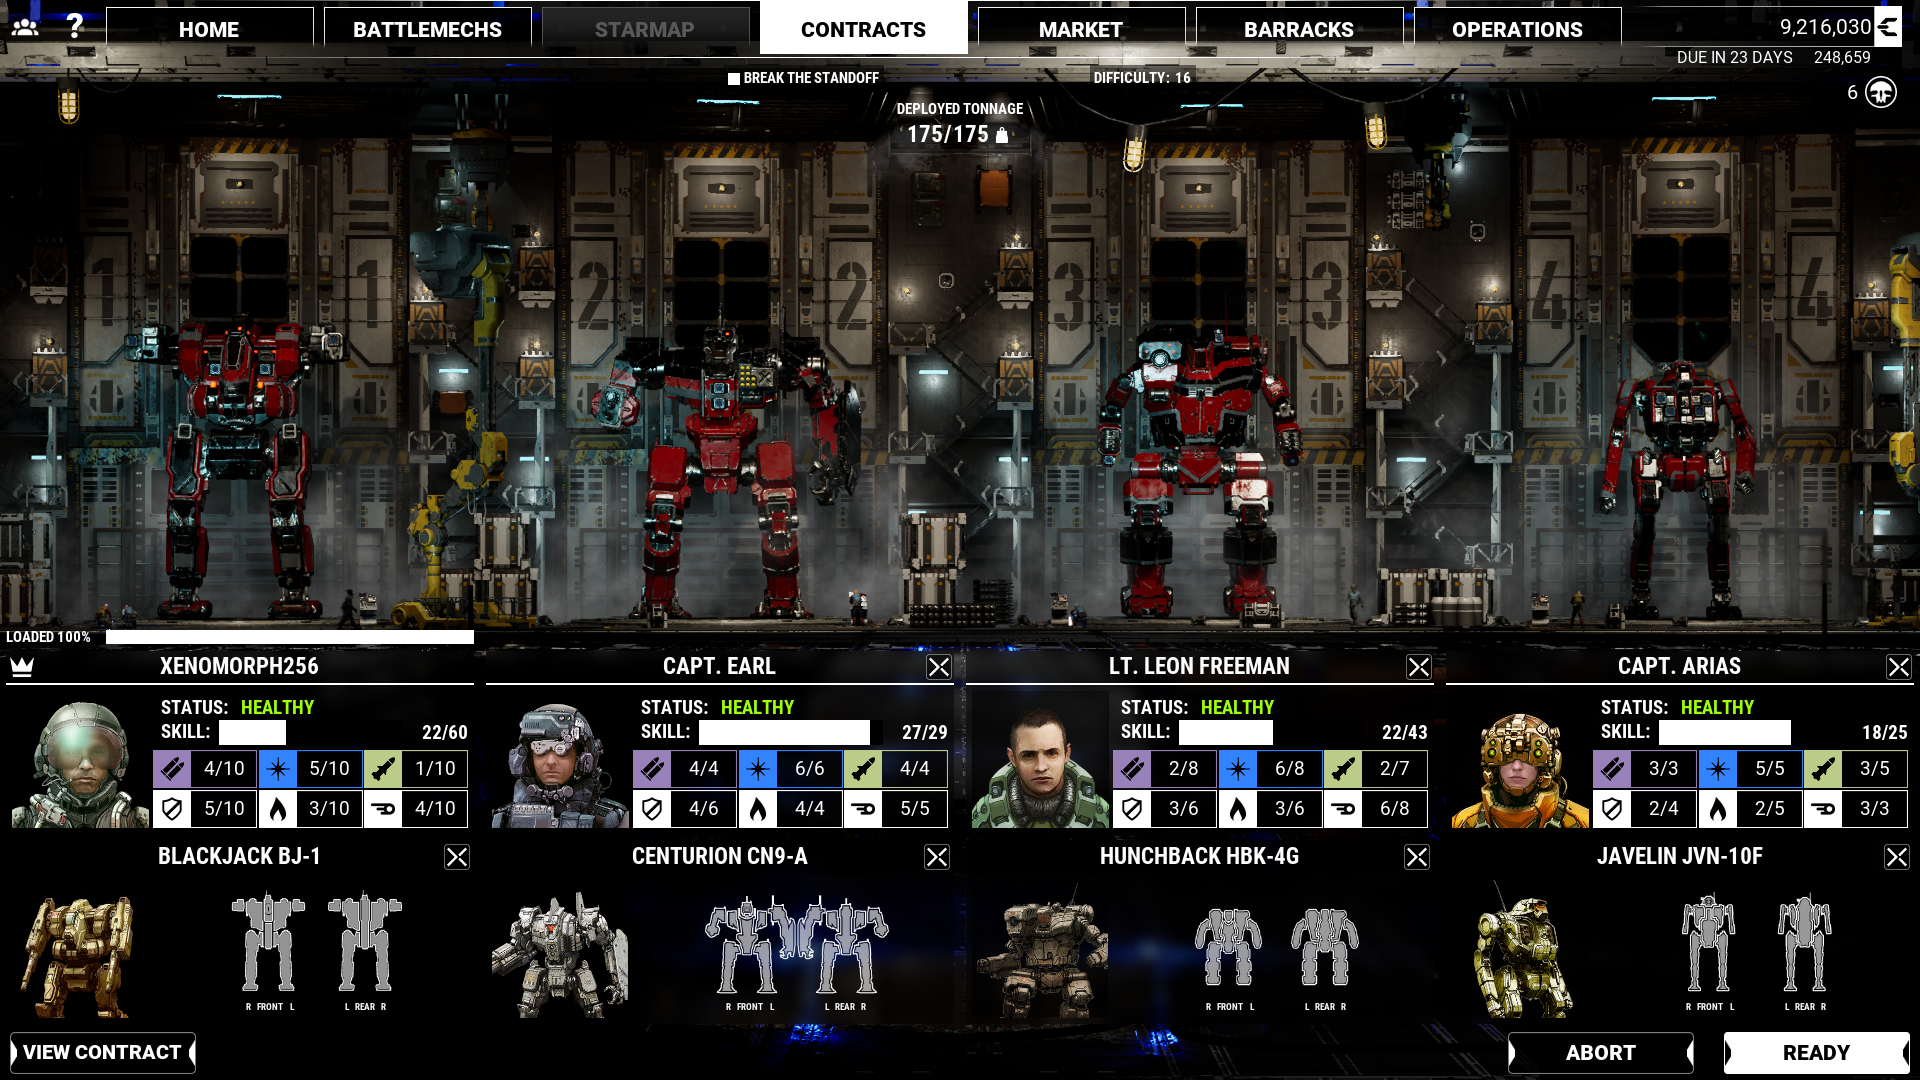 Mechwarrior 5  Mercenaries Screenshot 2019.12.12 - 22.36.25.46.png